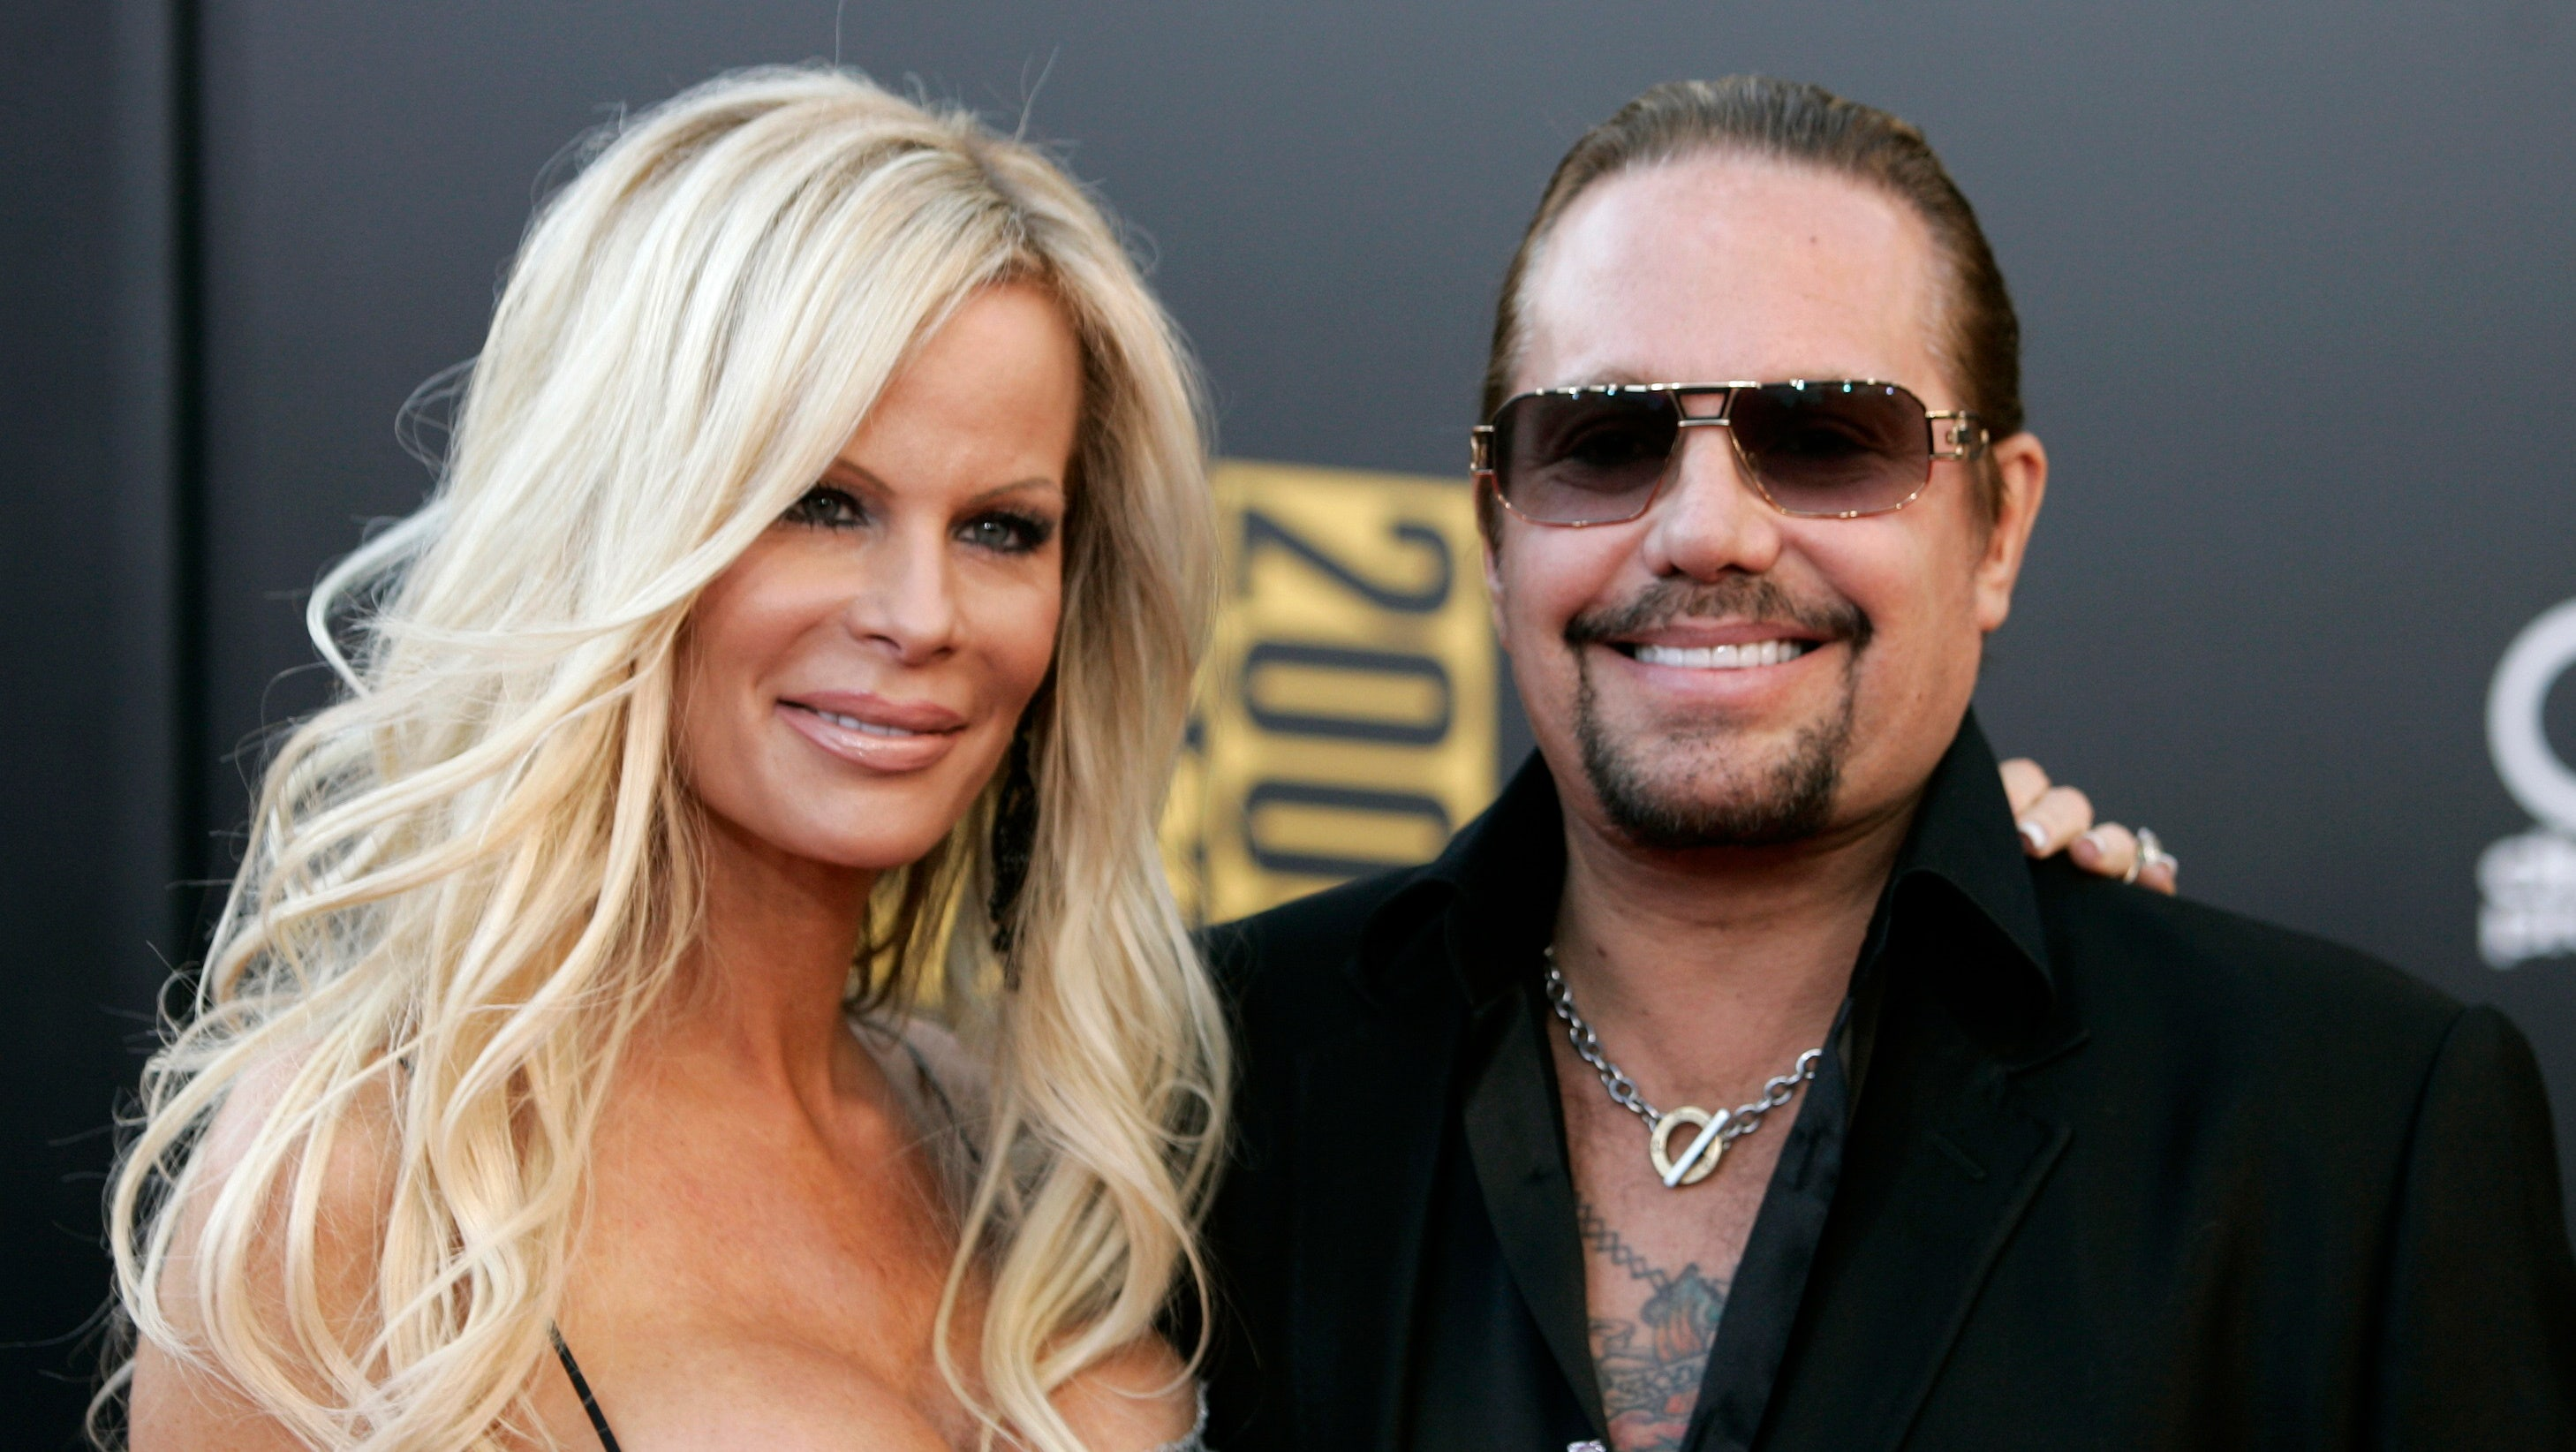 vince neil arrested on drunk driving charge fox news. Black Bedroom Furniture Sets. Home Design Ideas